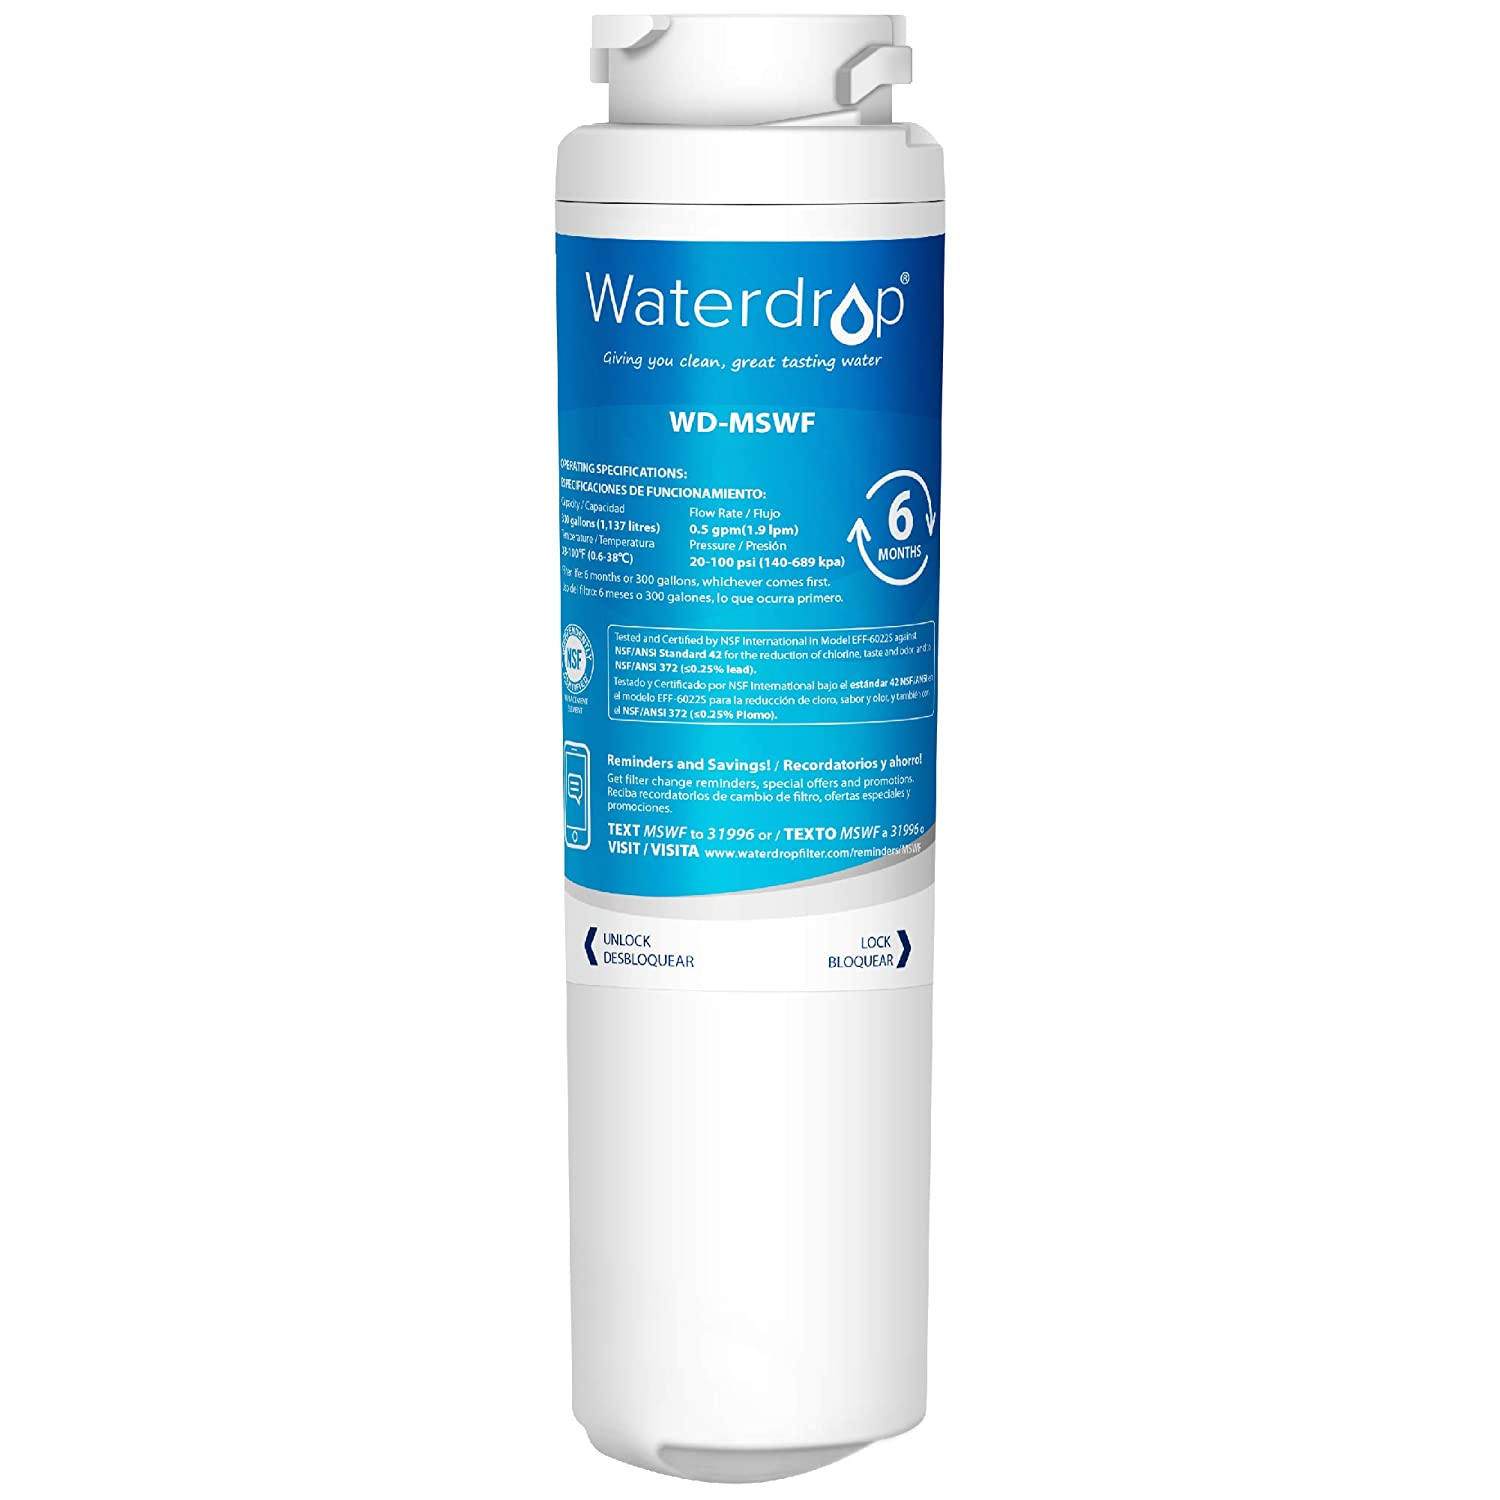 Waterdrop Refrigerator Water Filter, Compatible with GE MSWF, 101820A, 101821B, 101821-B-Standard